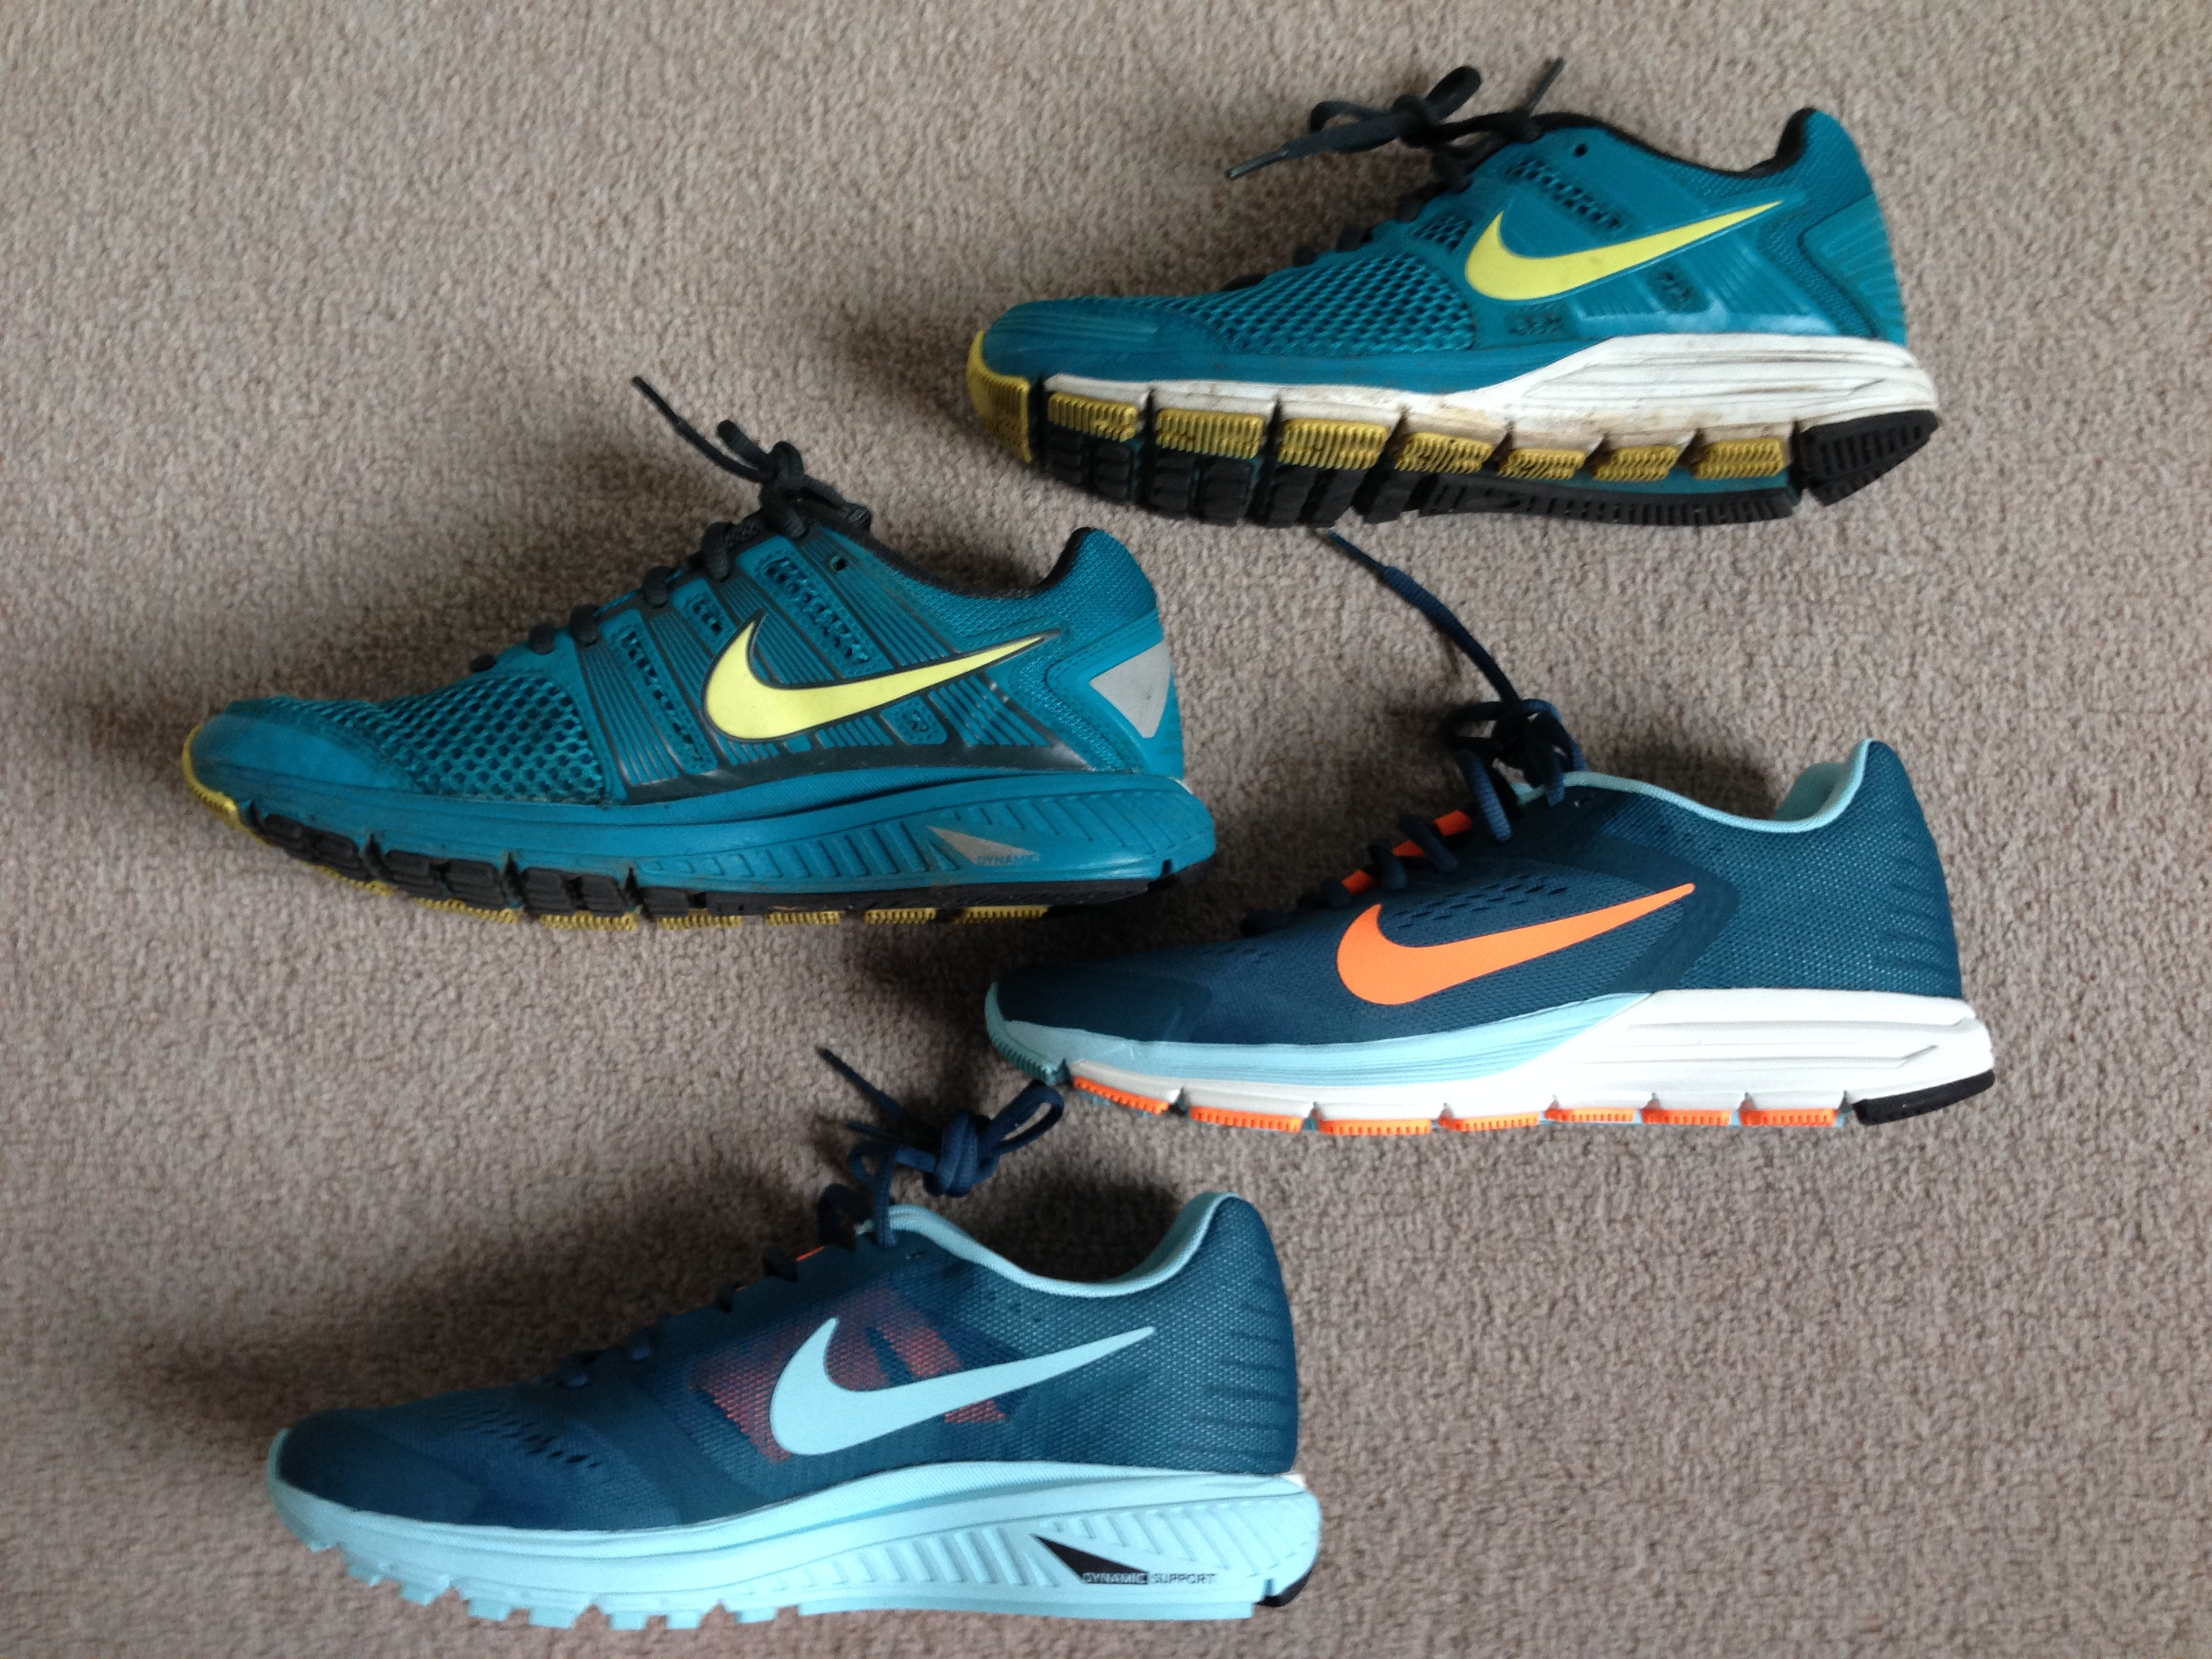 quality design 94b15 0fbfe New shoes – Nike Zoom Structure+17 – Hysterical Runner